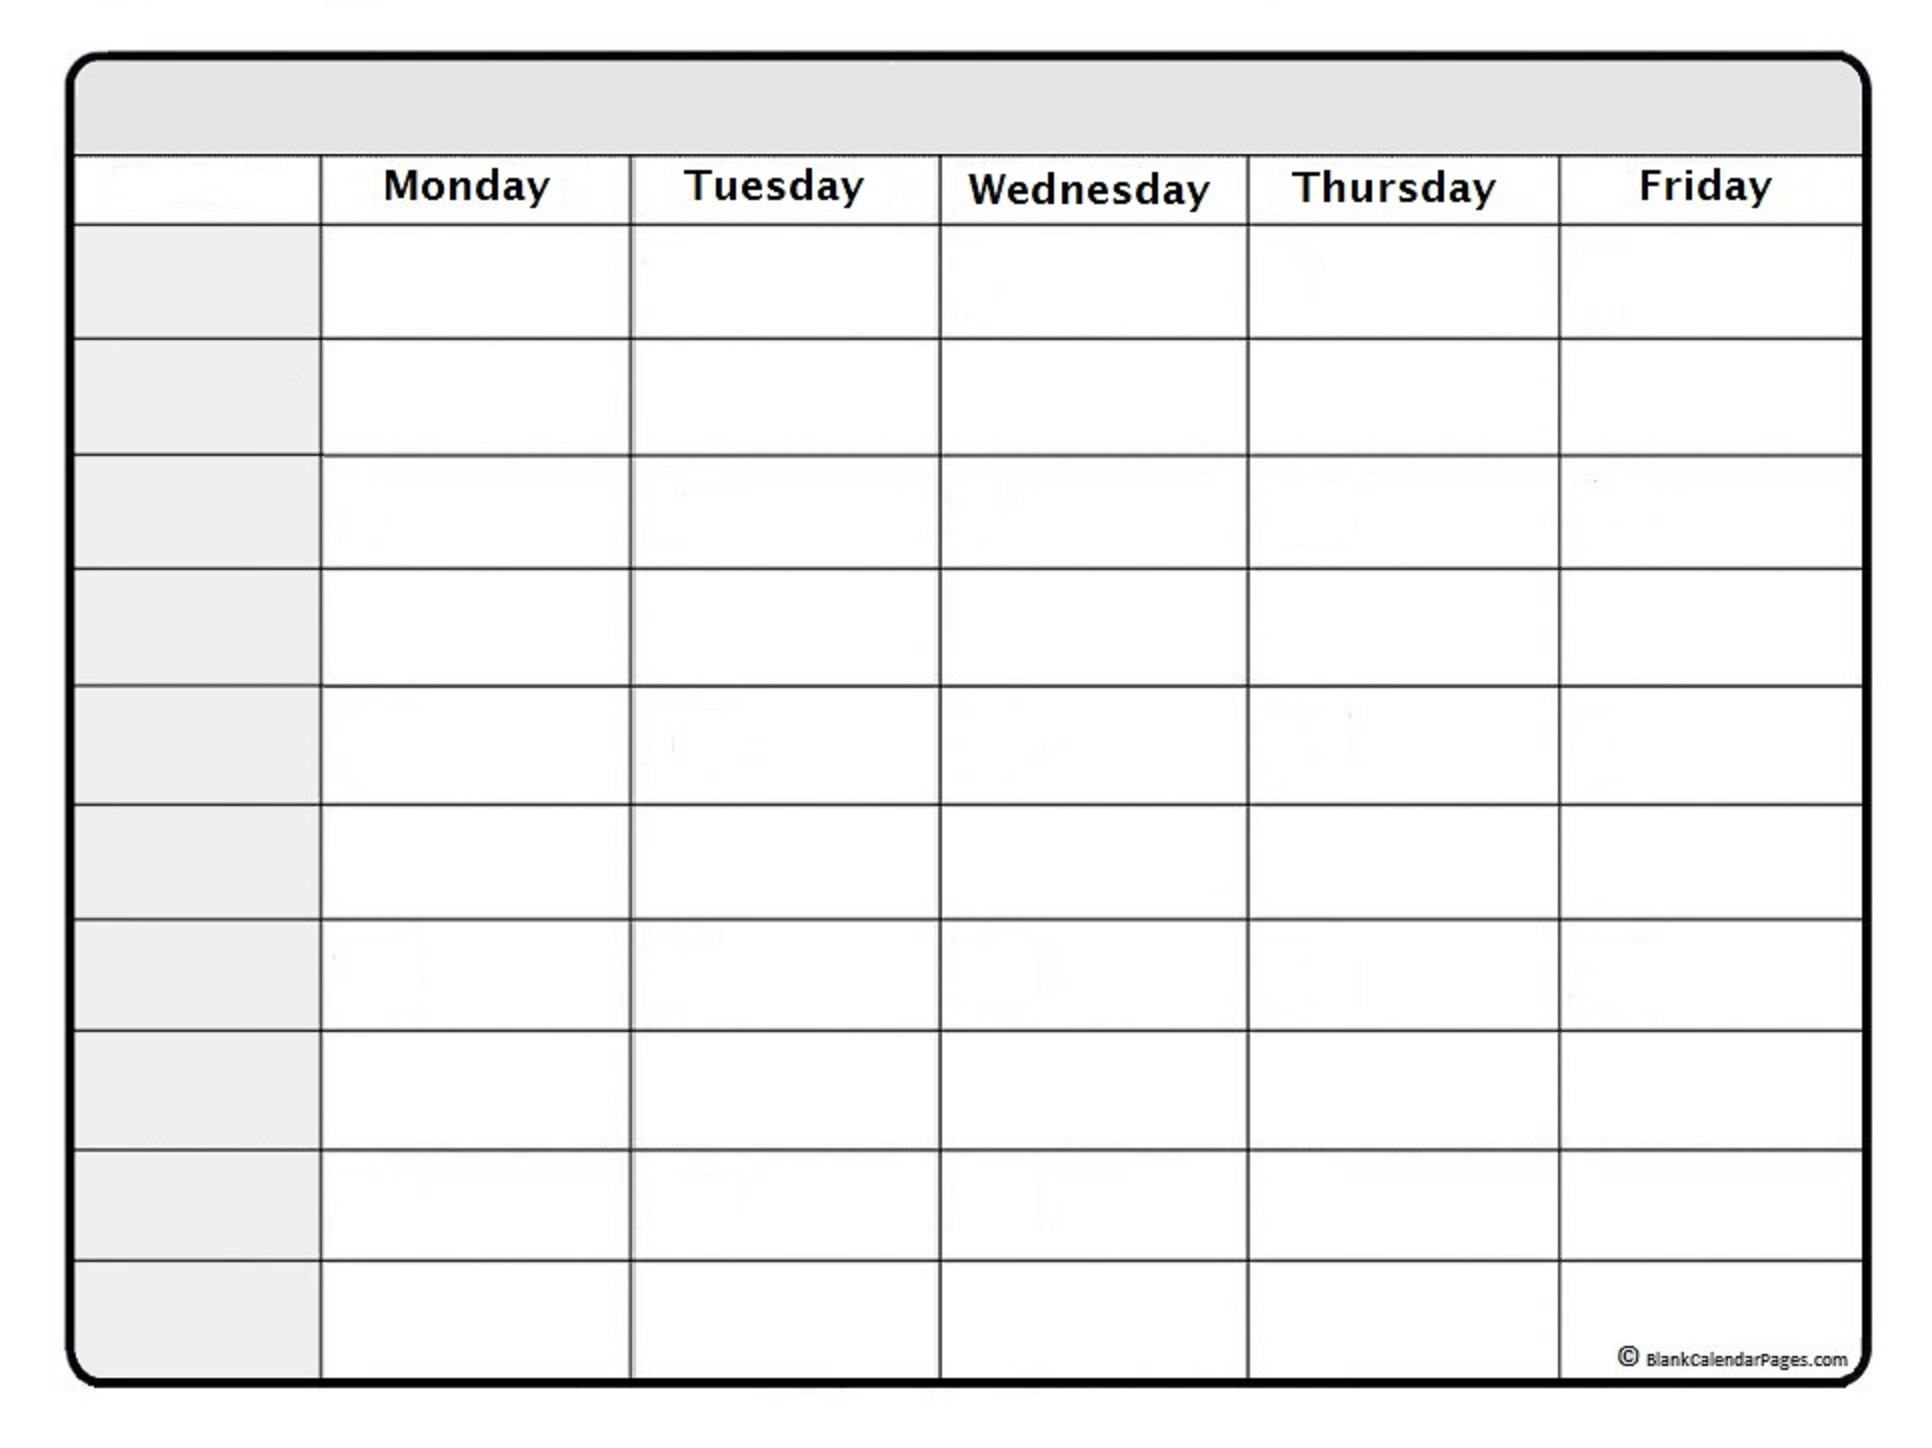 Get Days Of The Week Template Schedule